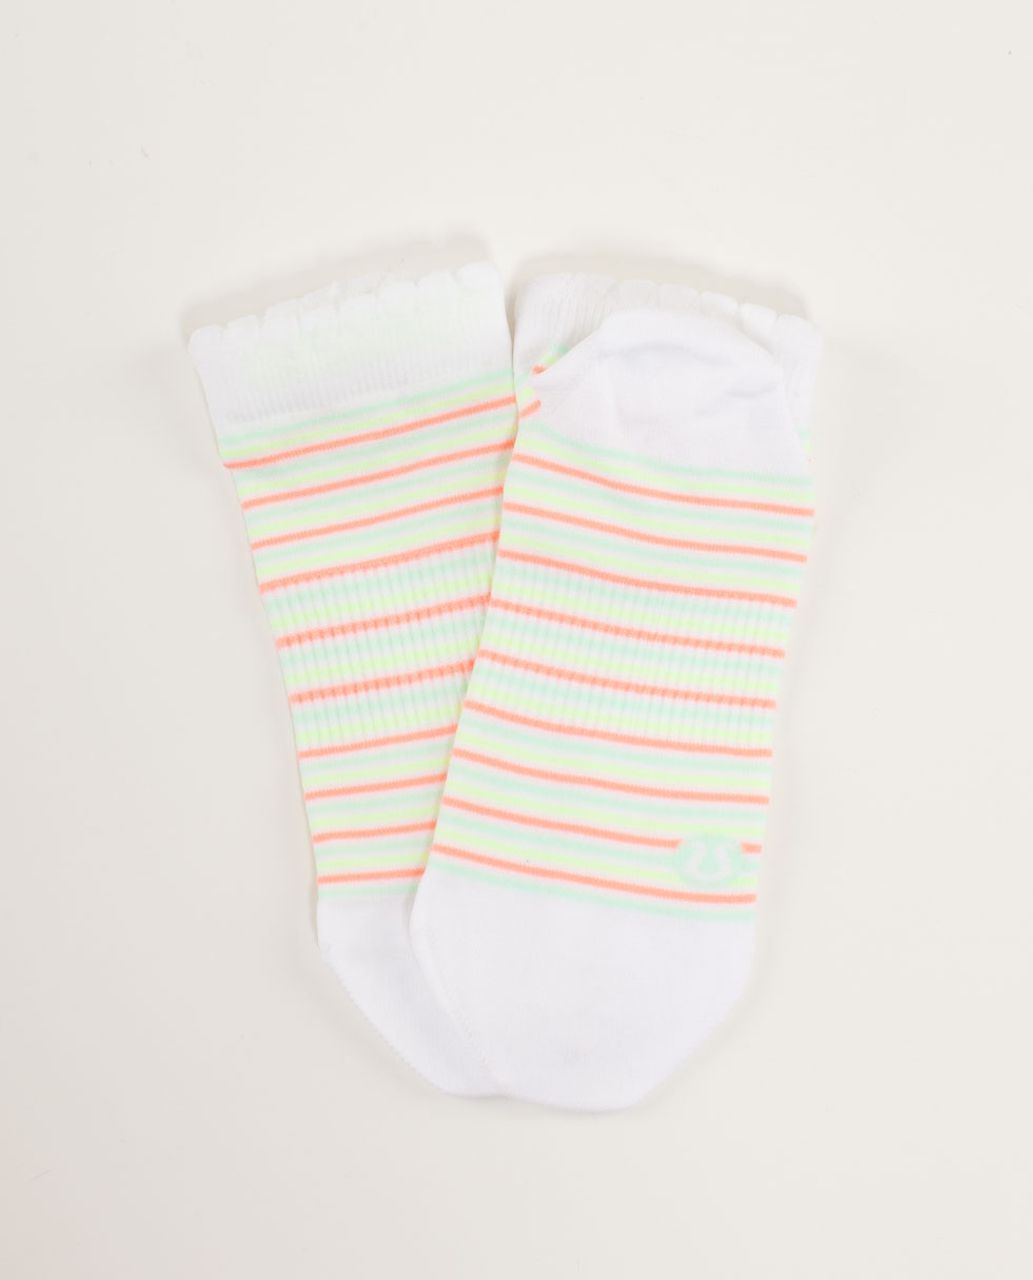 Lululemon Run For Ice Cream Sock - Sundae Stripe Fresh Teal